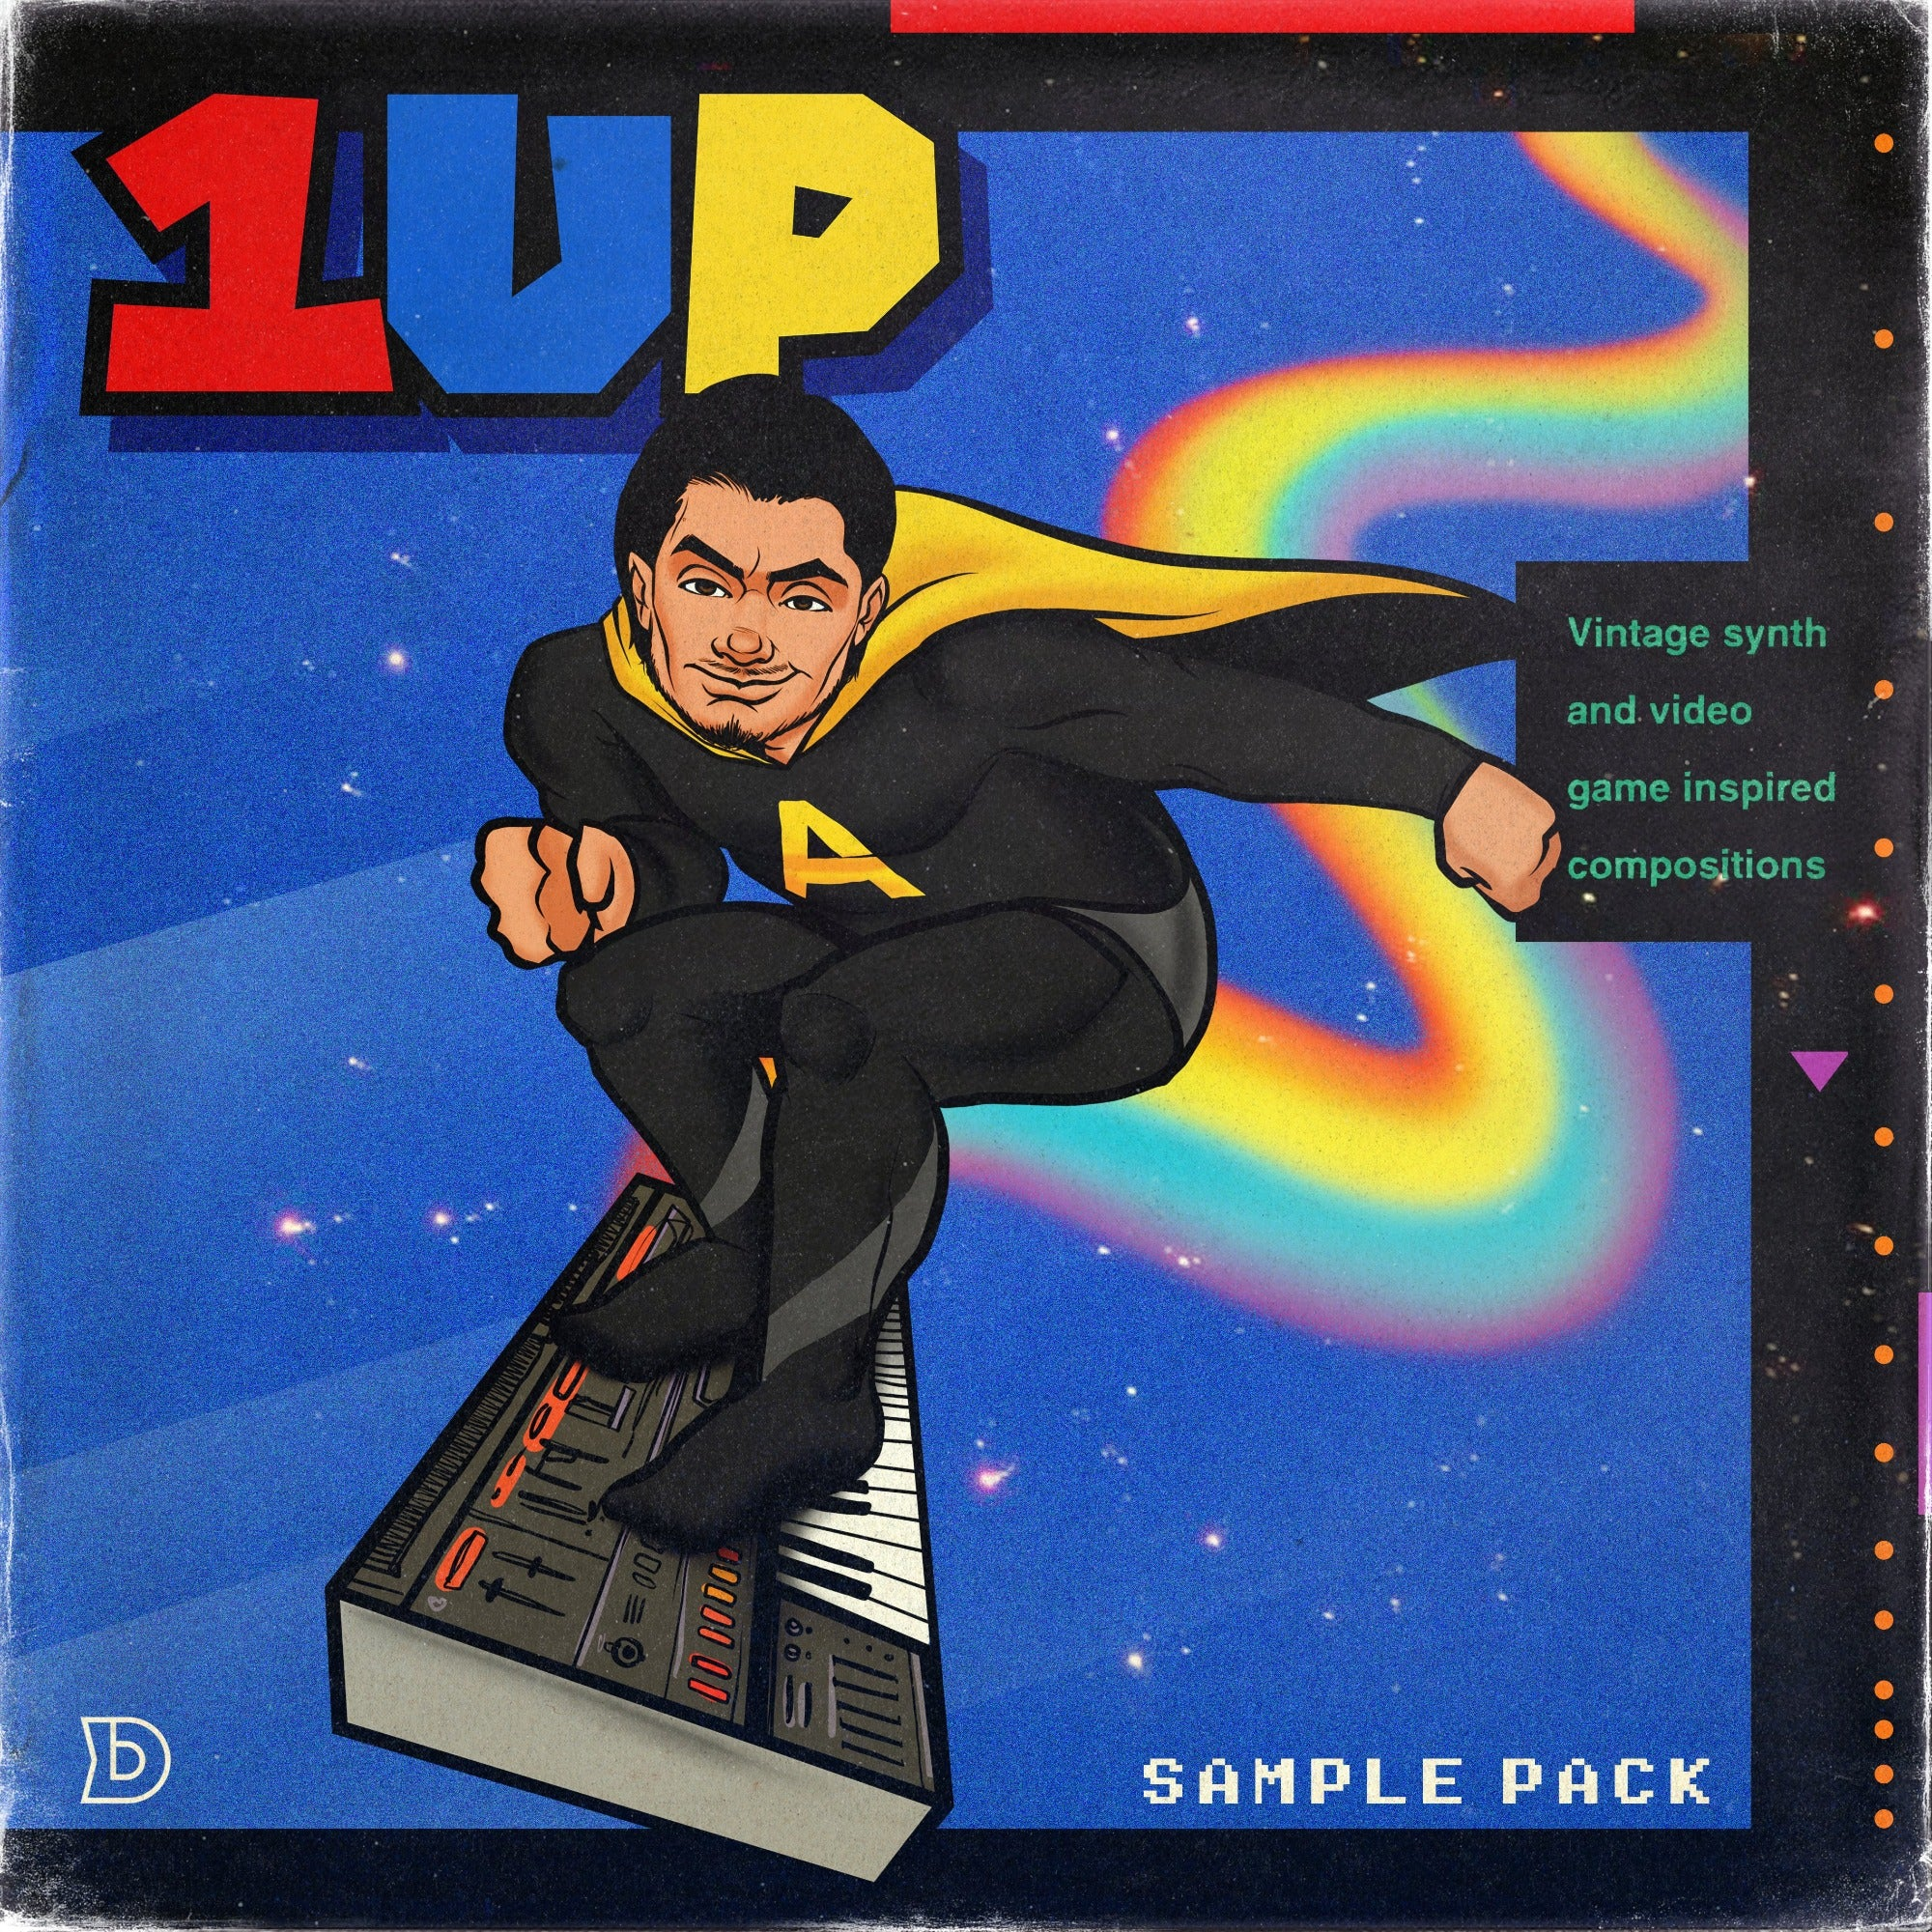 1Up Sample Pack